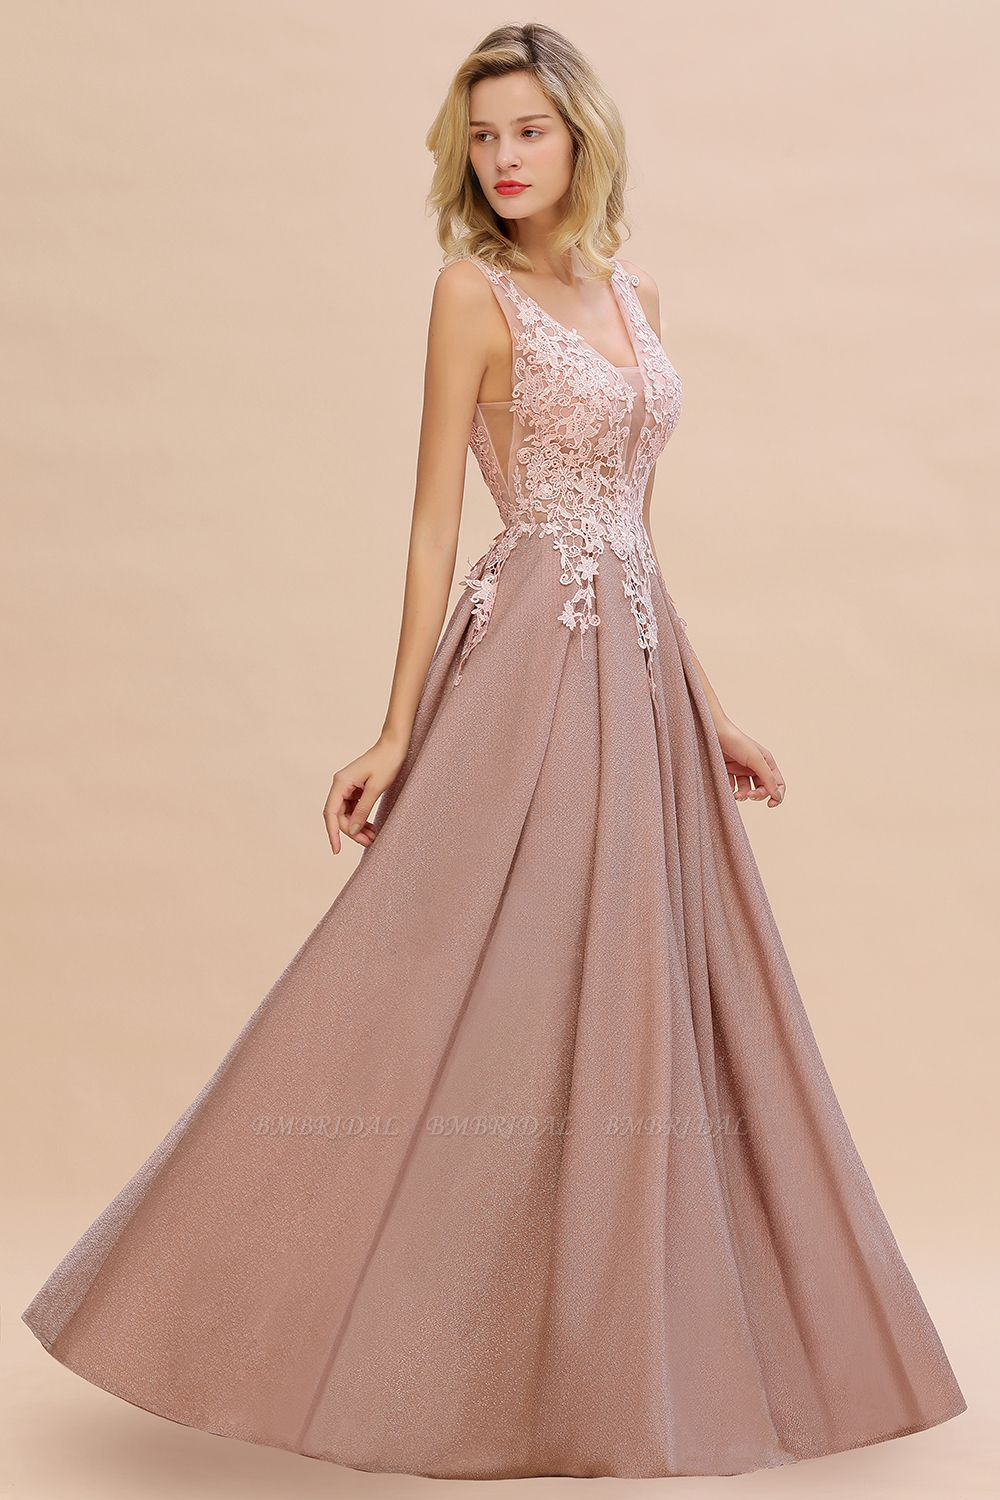 Dusty Pink V-Neck Long Prom Dress With Lace Appliques Online